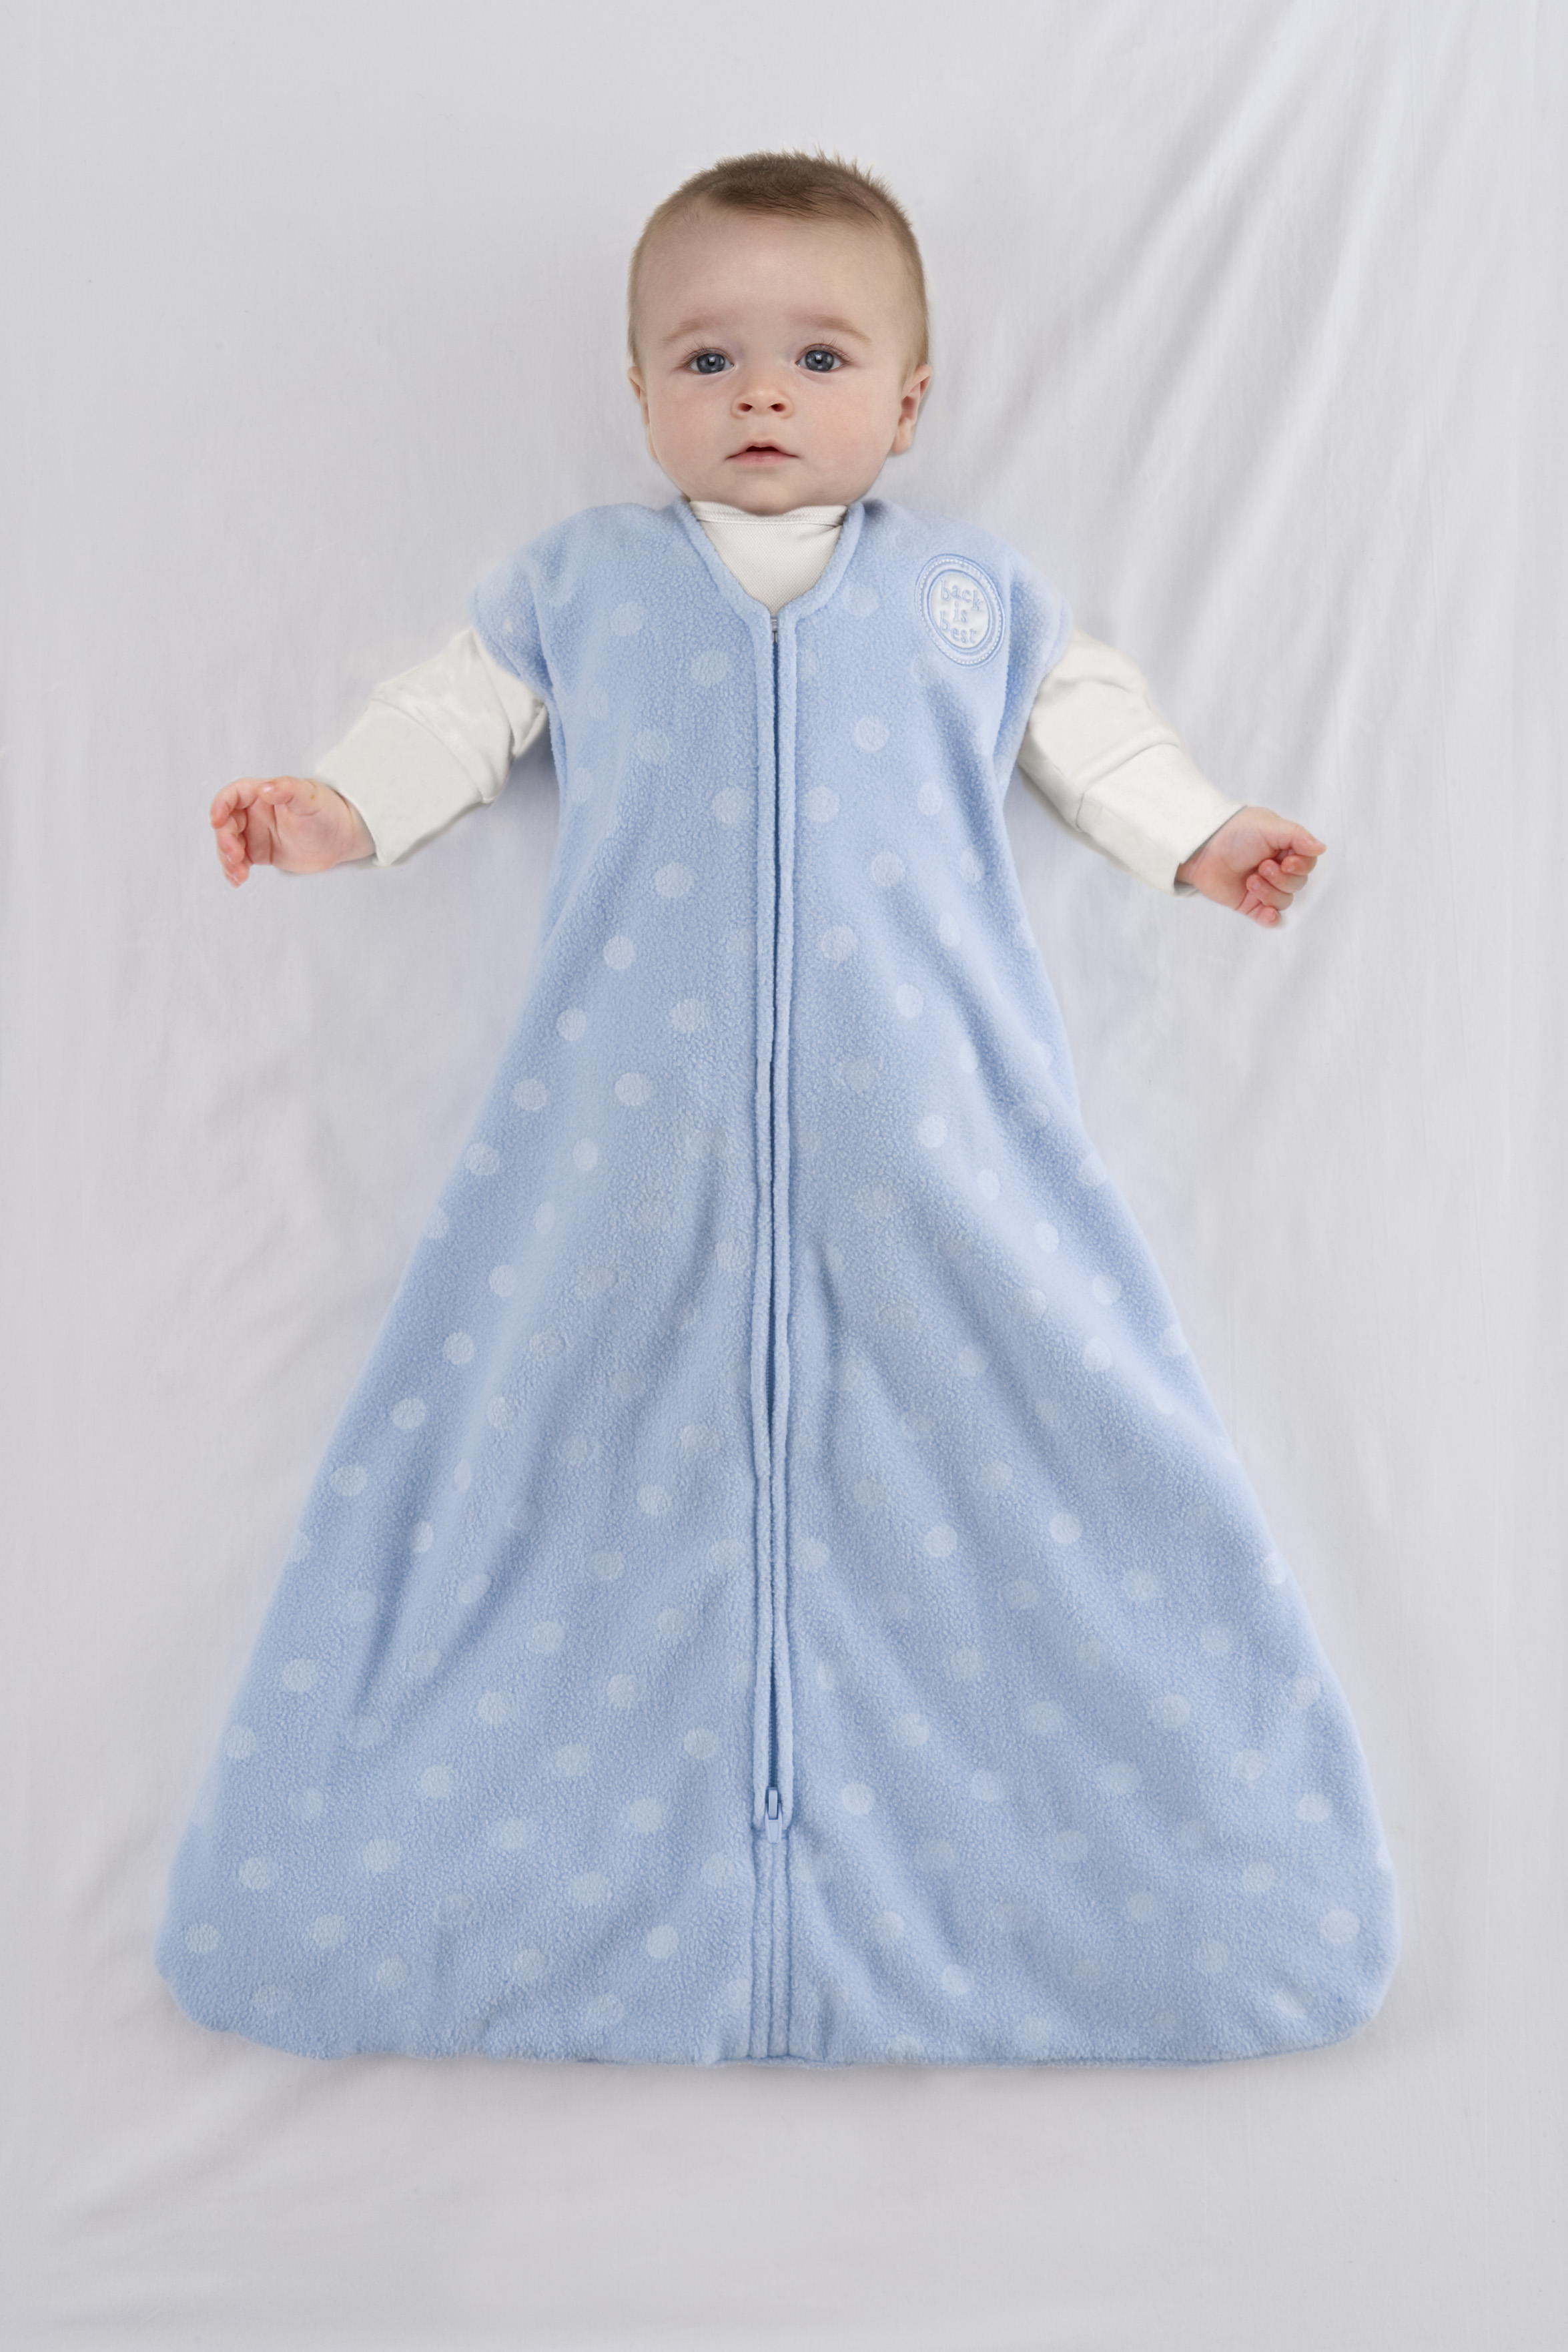 Size Chart Selecting the proper size wearable blanket for your child: We recommend selecting a size based on your baby's current weight and height.